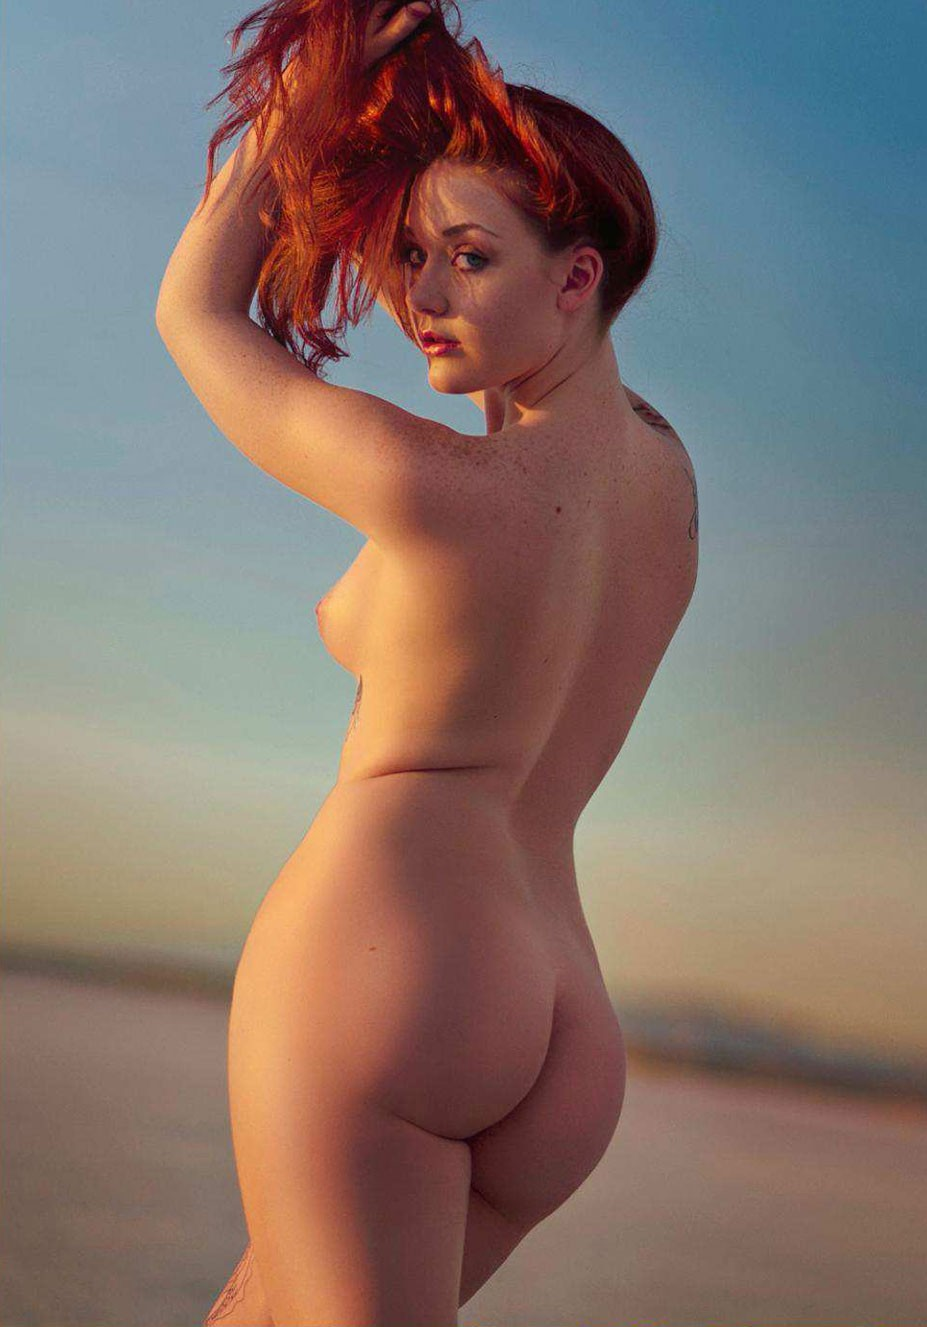 Mychala Sandberg nude by Jason Kamerath - Volo Magazine september 2016